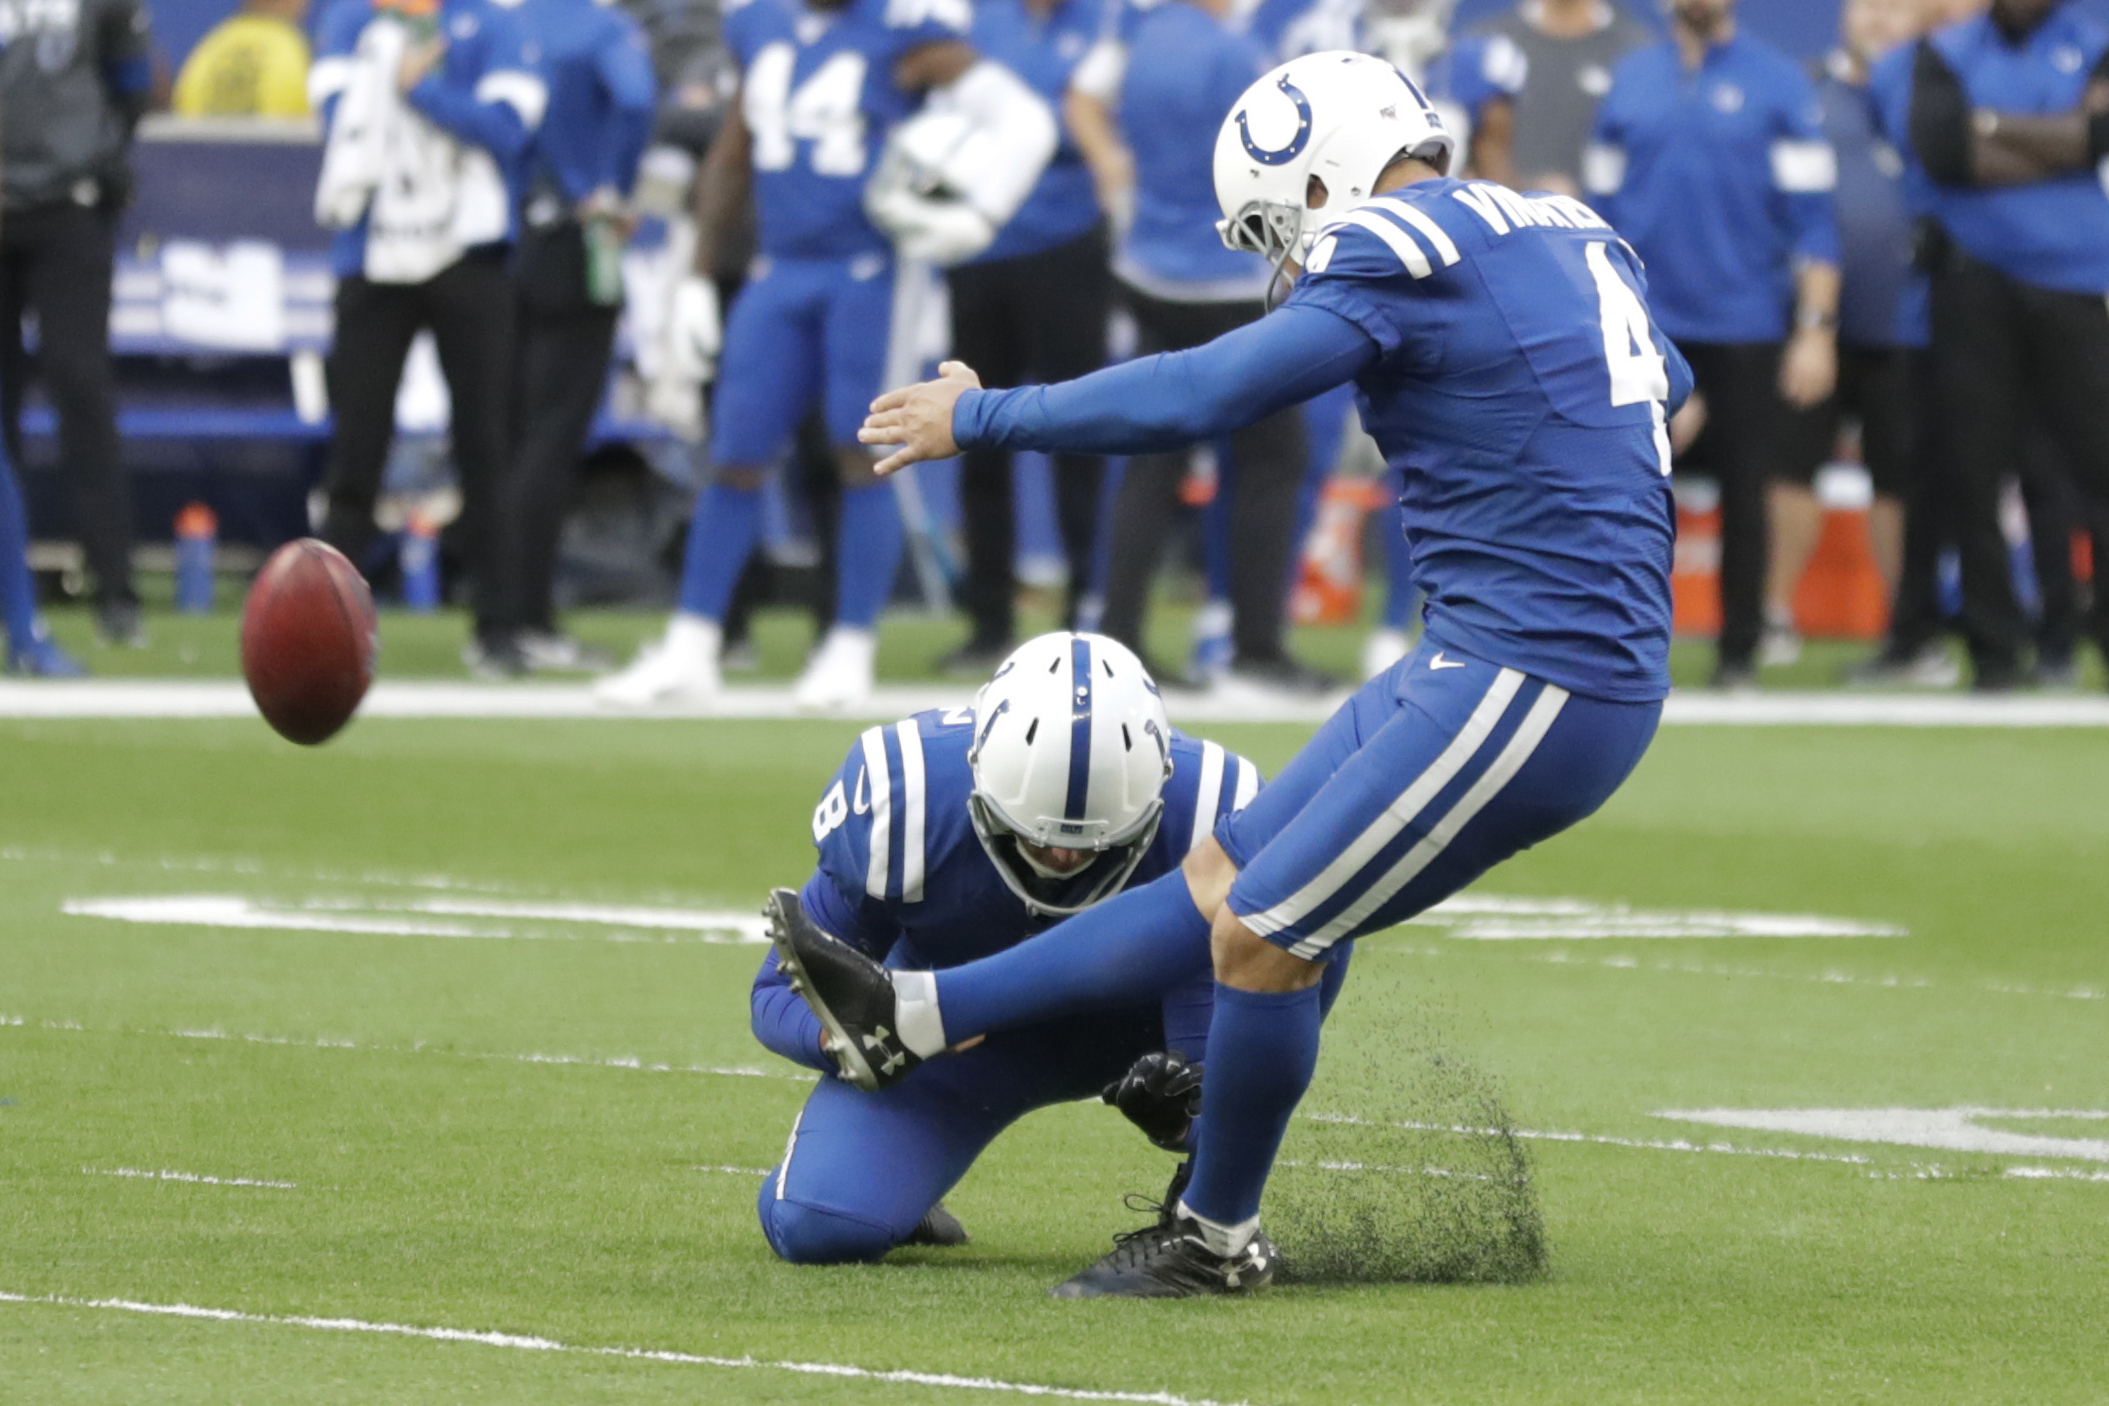 Colts Sign 2nd Kicker As Vinatieri Recovers From Knee Injury Wane 15